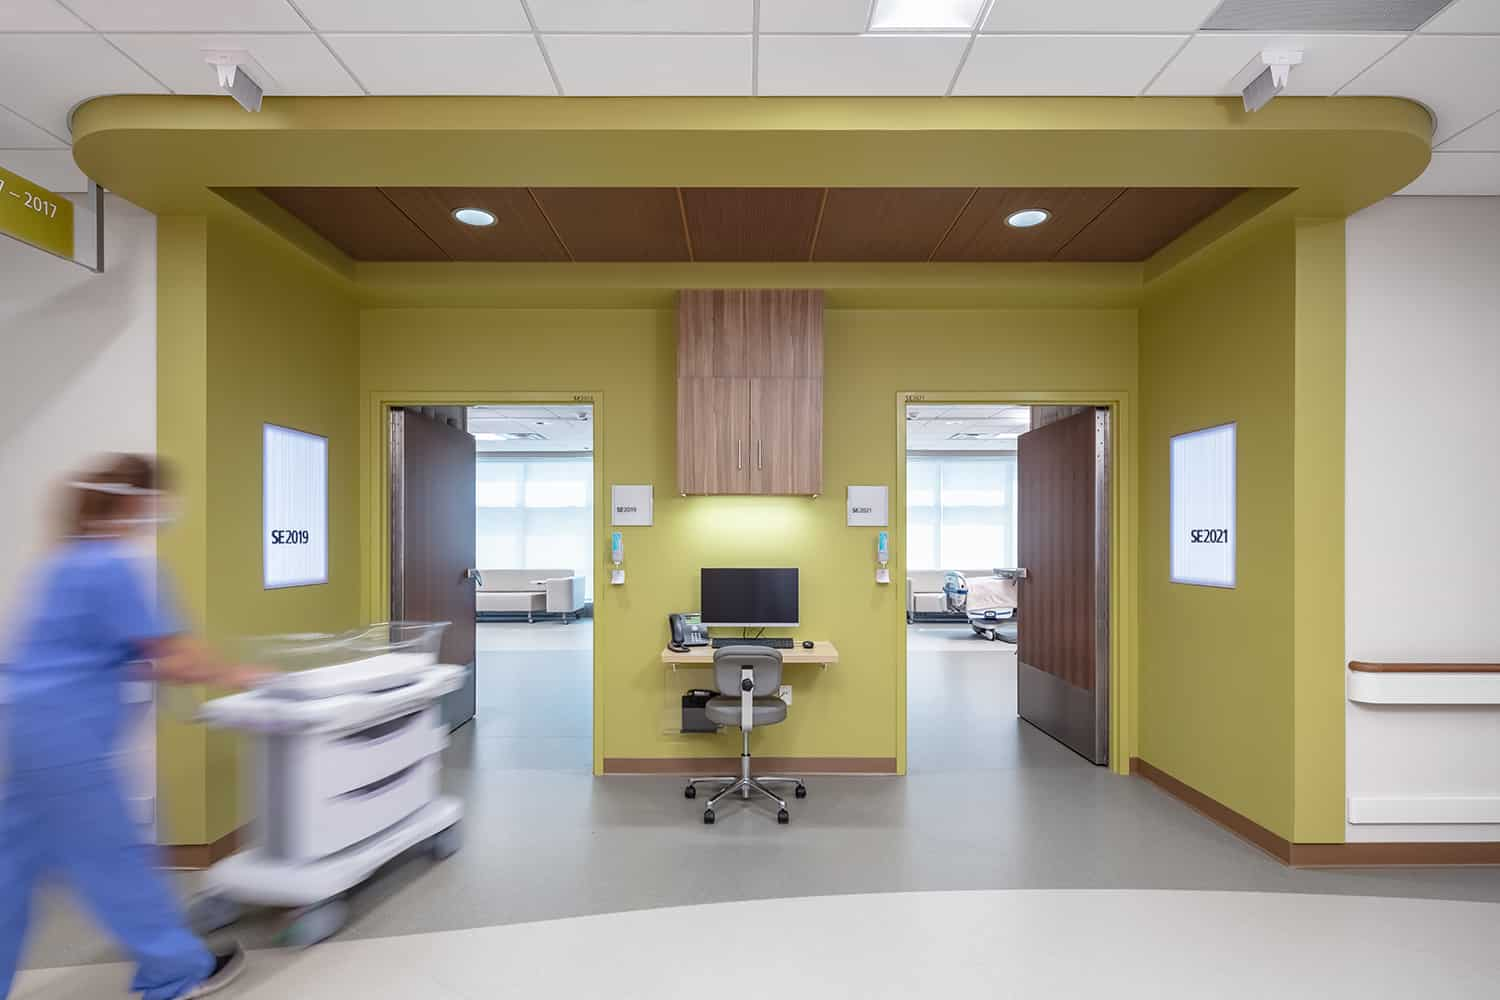 View from the corridor into two post op rooms with green entry wayfinding.